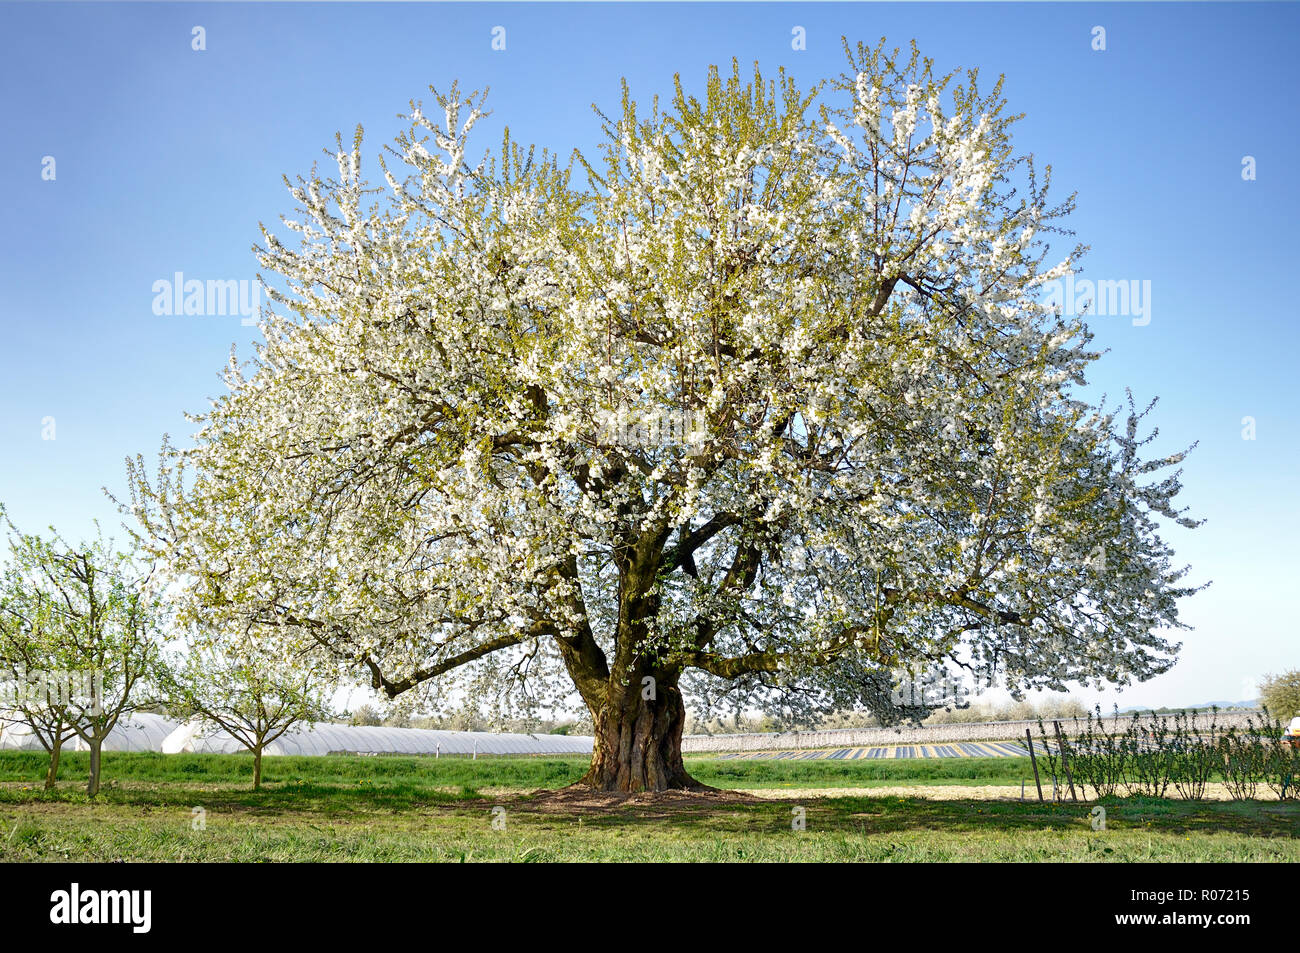 cherry blossom tree in spring - Stock Image